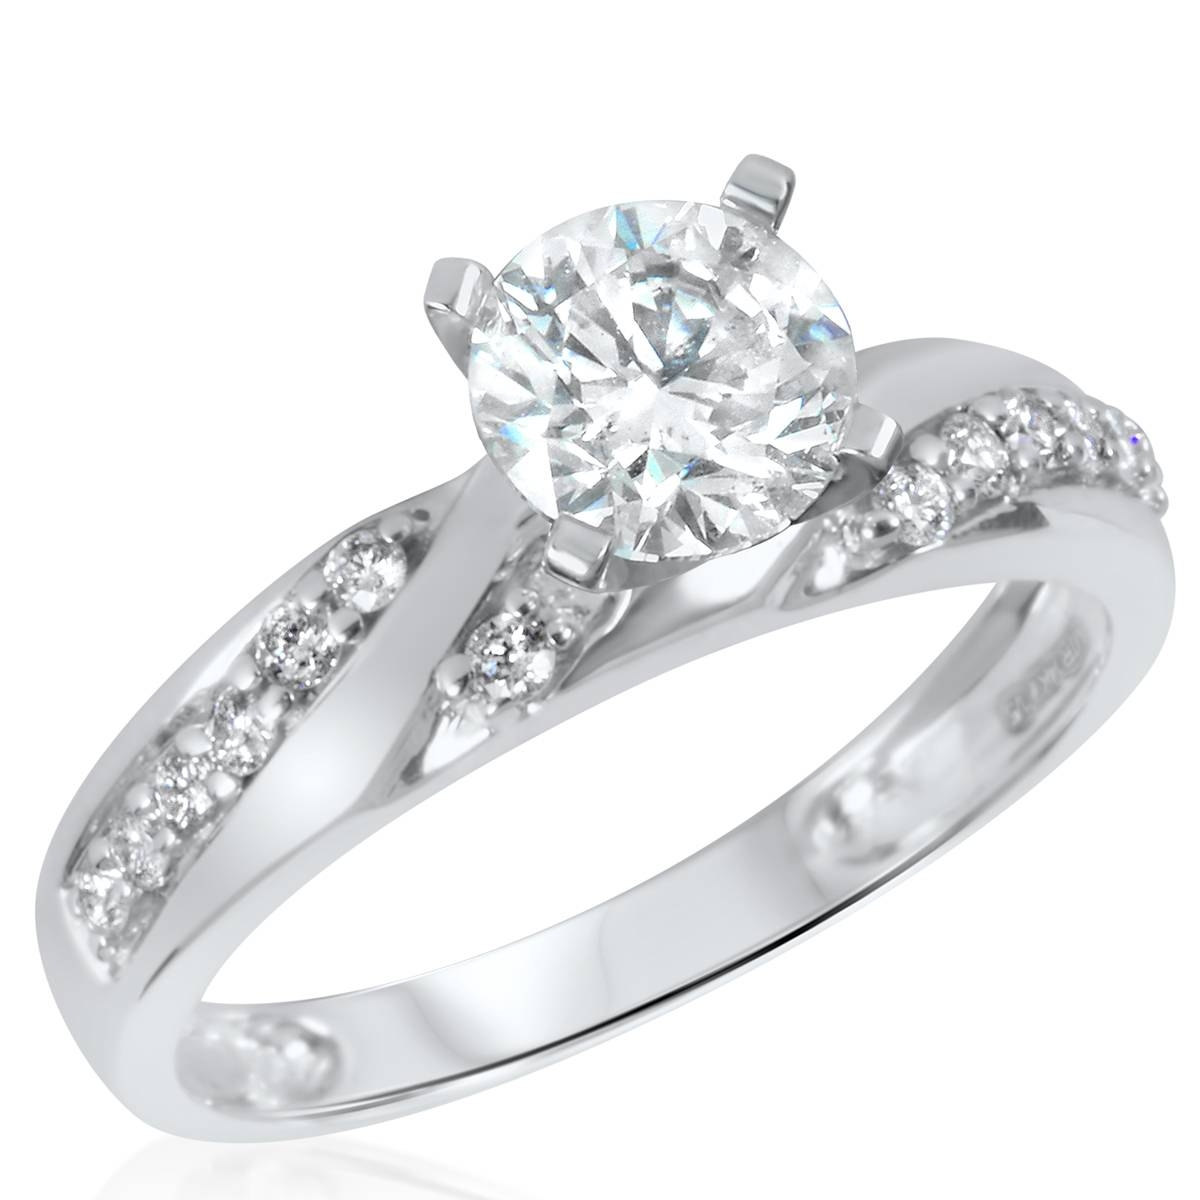 Bridal Sets: Bridal Sets Wedding Rings White Gold Size 9, Womens Regarding Wedding Bands Sets For Women (View 8 of 15)